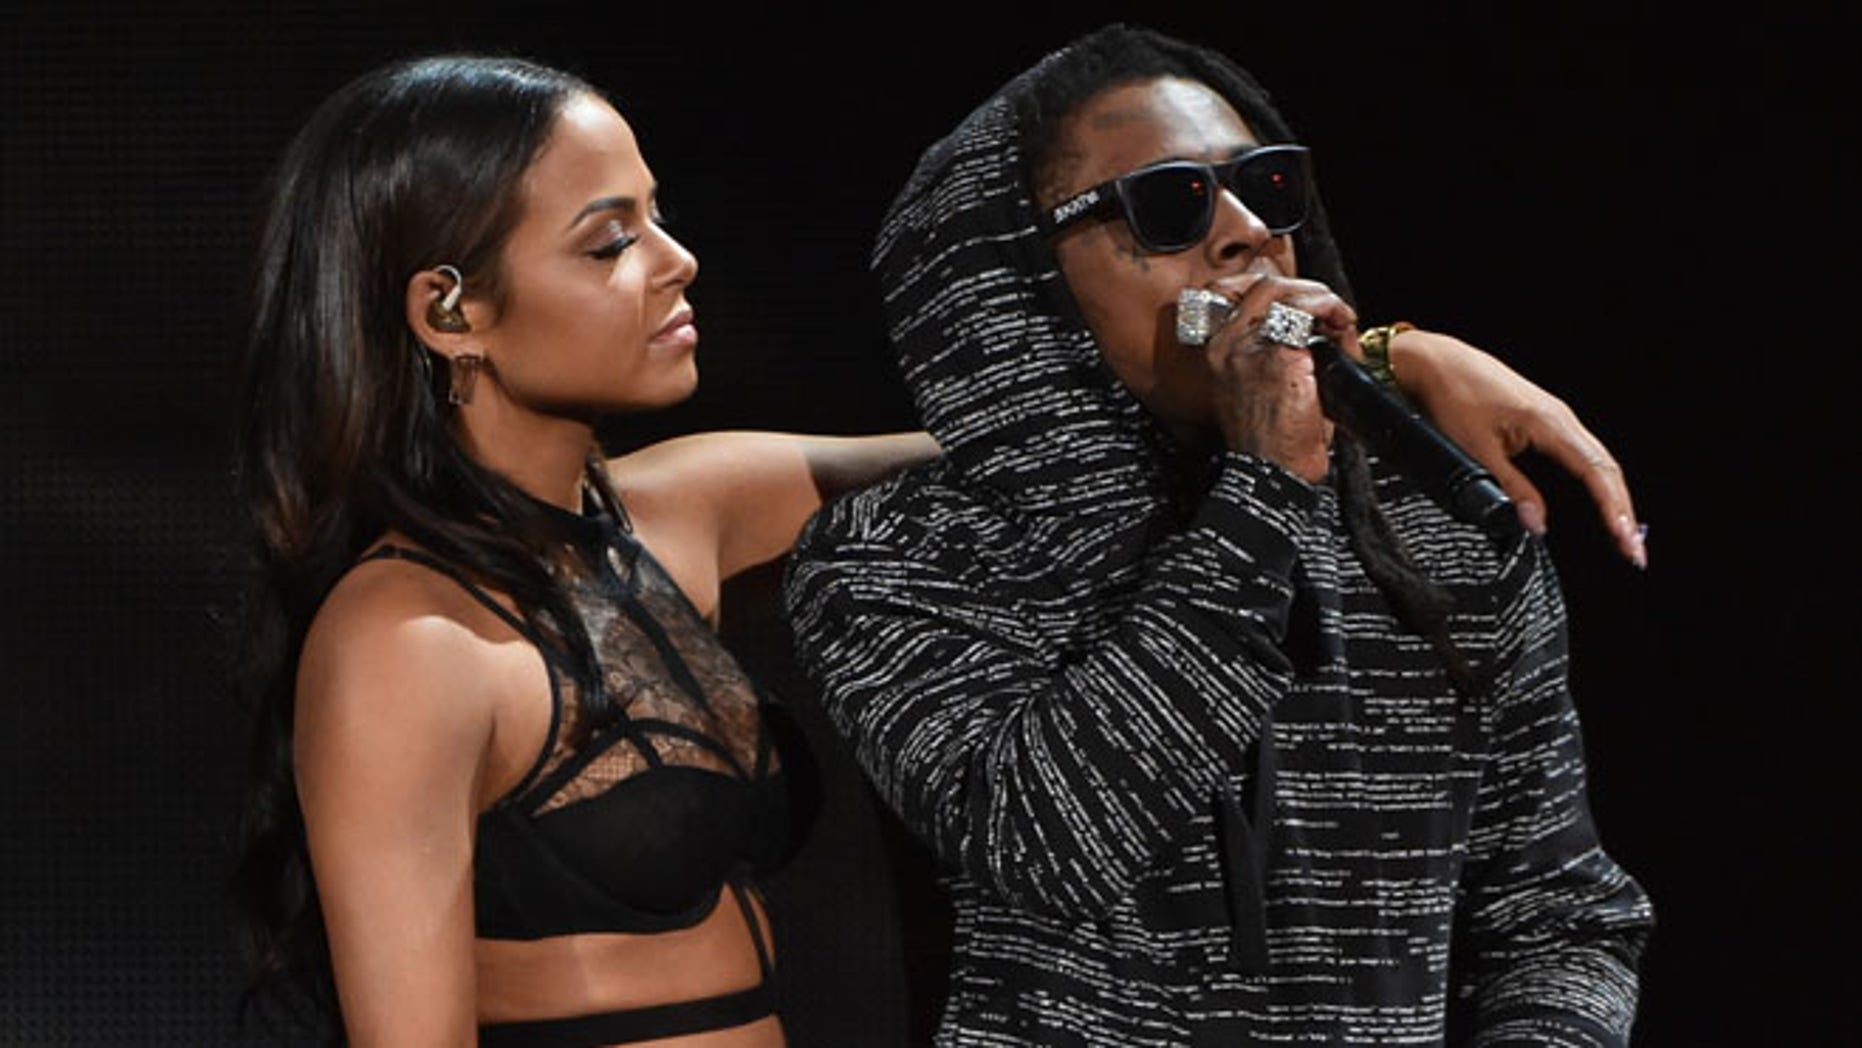 Christina Milian and Lil Wayne at the American Music Awards on November 23, 2014 in Los Angeles, California.